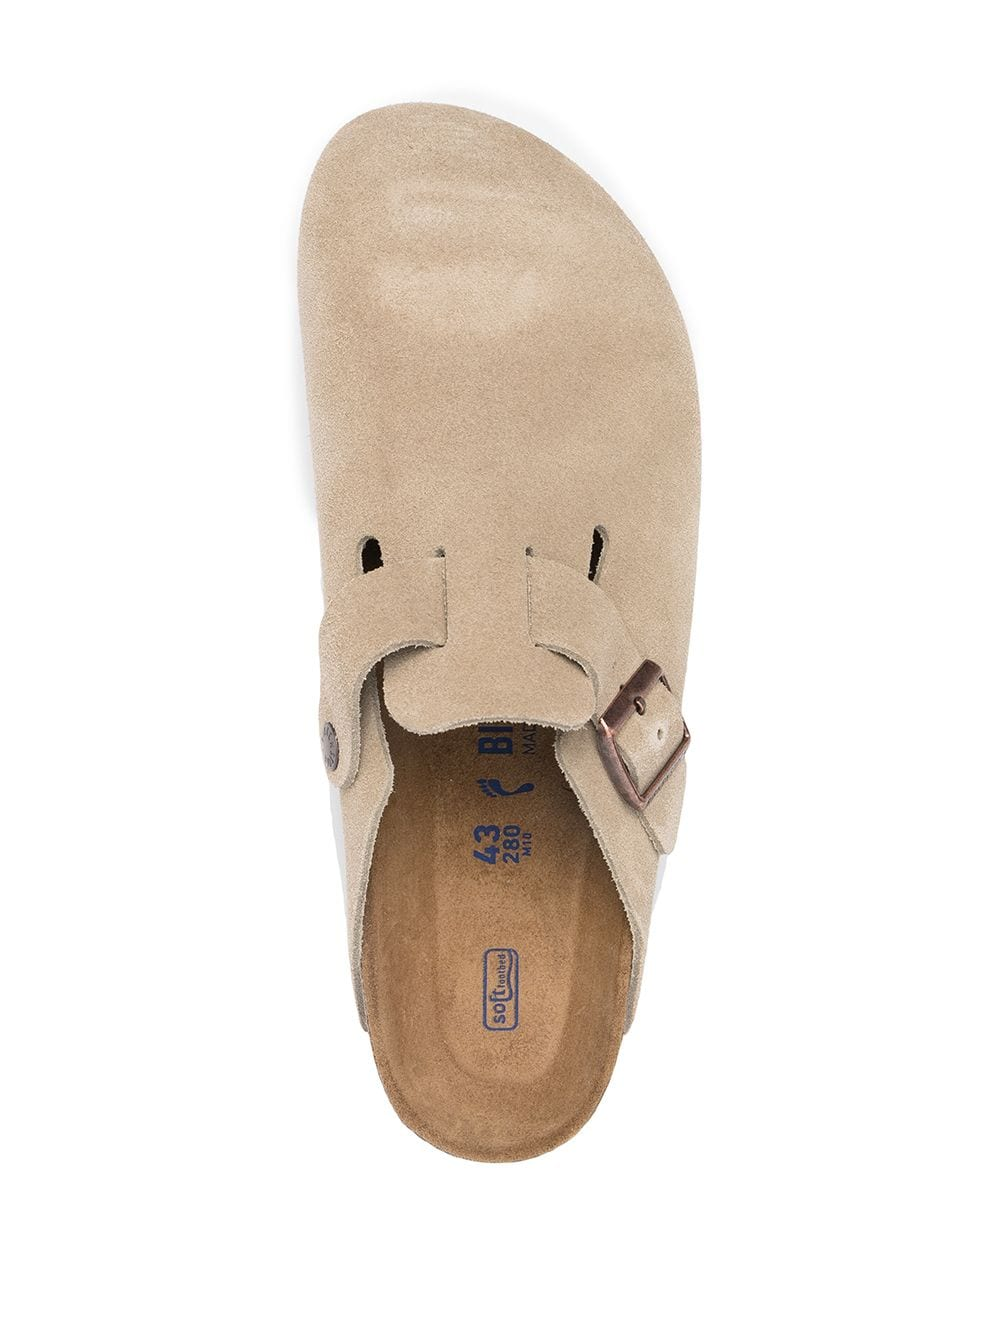 Birkenstock boston sandals man beige BIRKENSTOCK | Sandals | 560773TAUPE